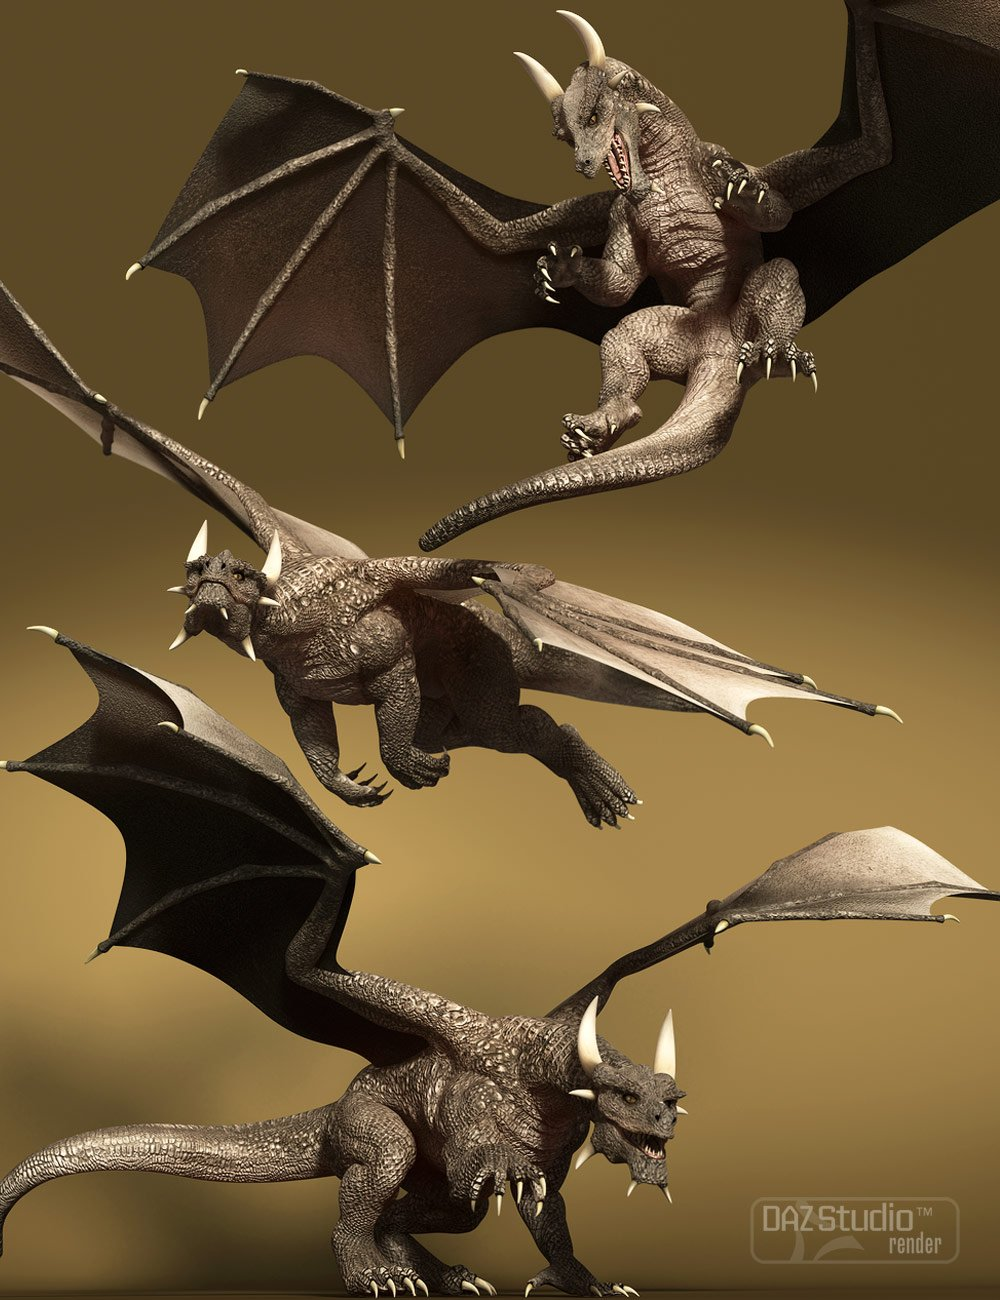 Cinematic Poses for DAZ Dragon 3 by: Muscleman, 3D Models by Daz 3D